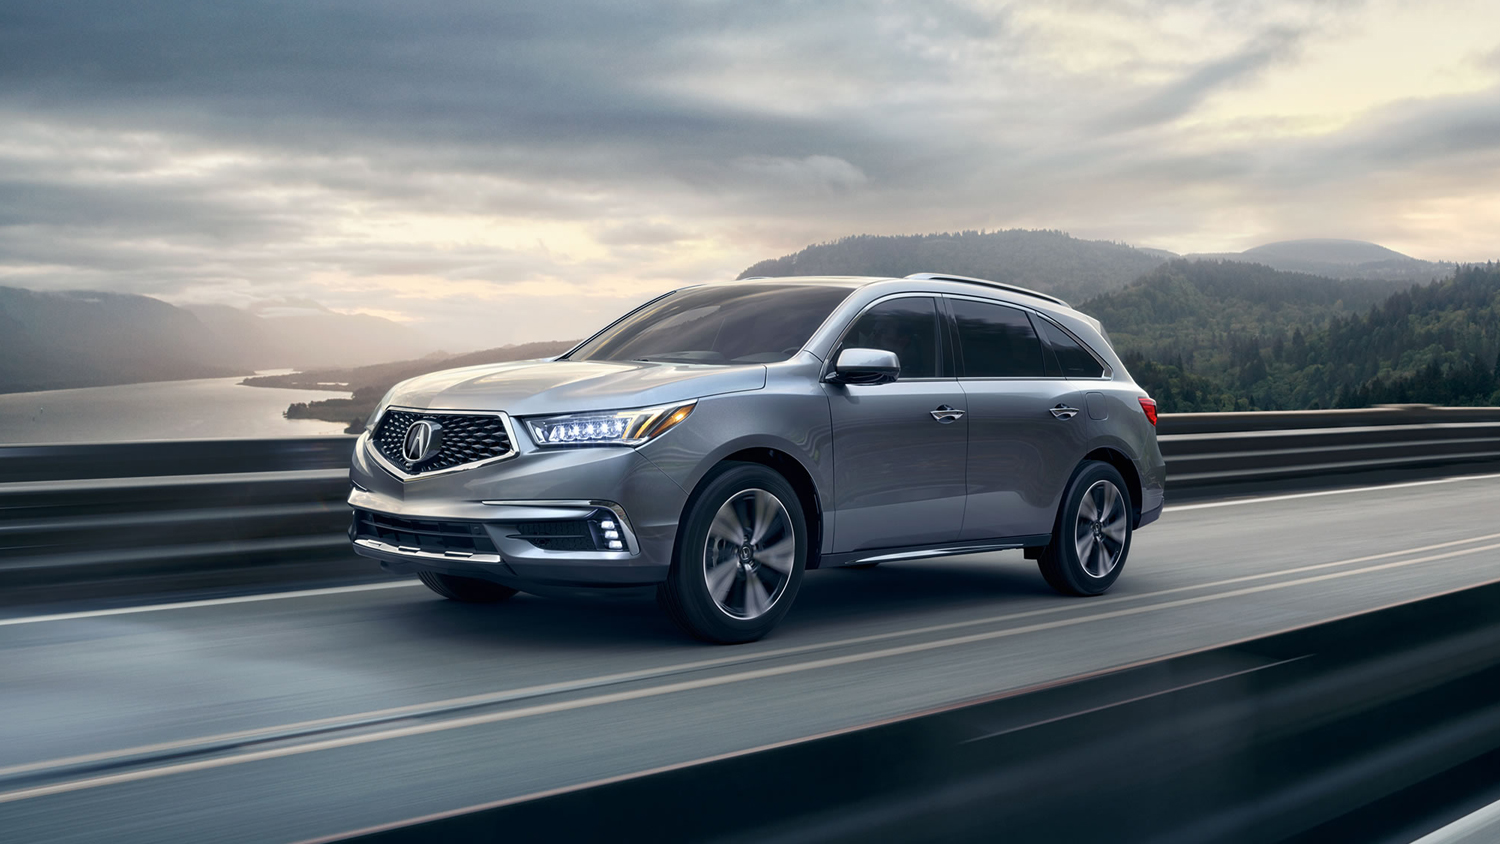 2017 Acura MDX Exterior Bridge